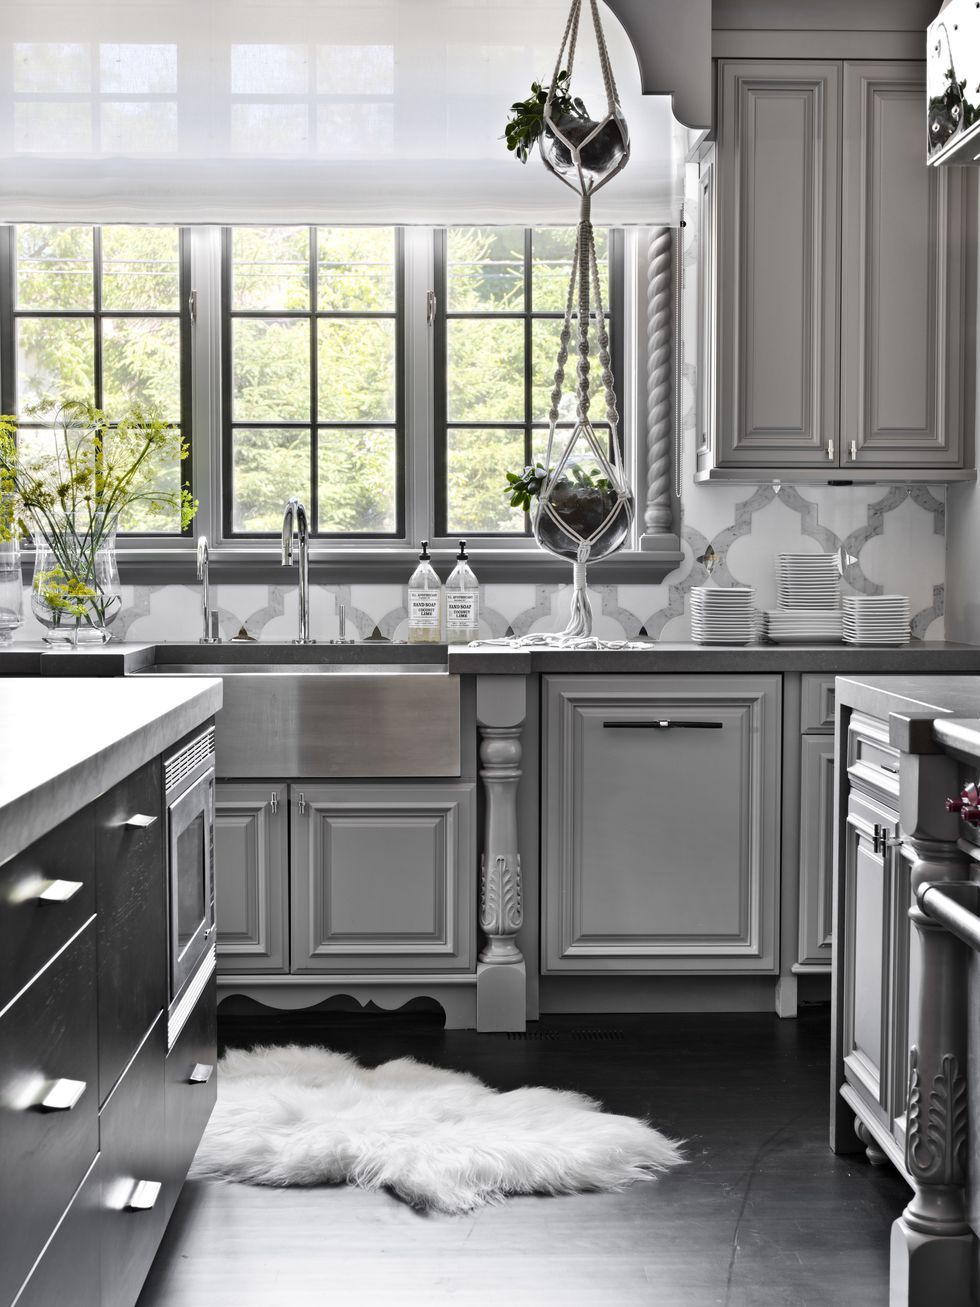 20 Eye Catching Kitchen Tile Backsplash Ideas To Love